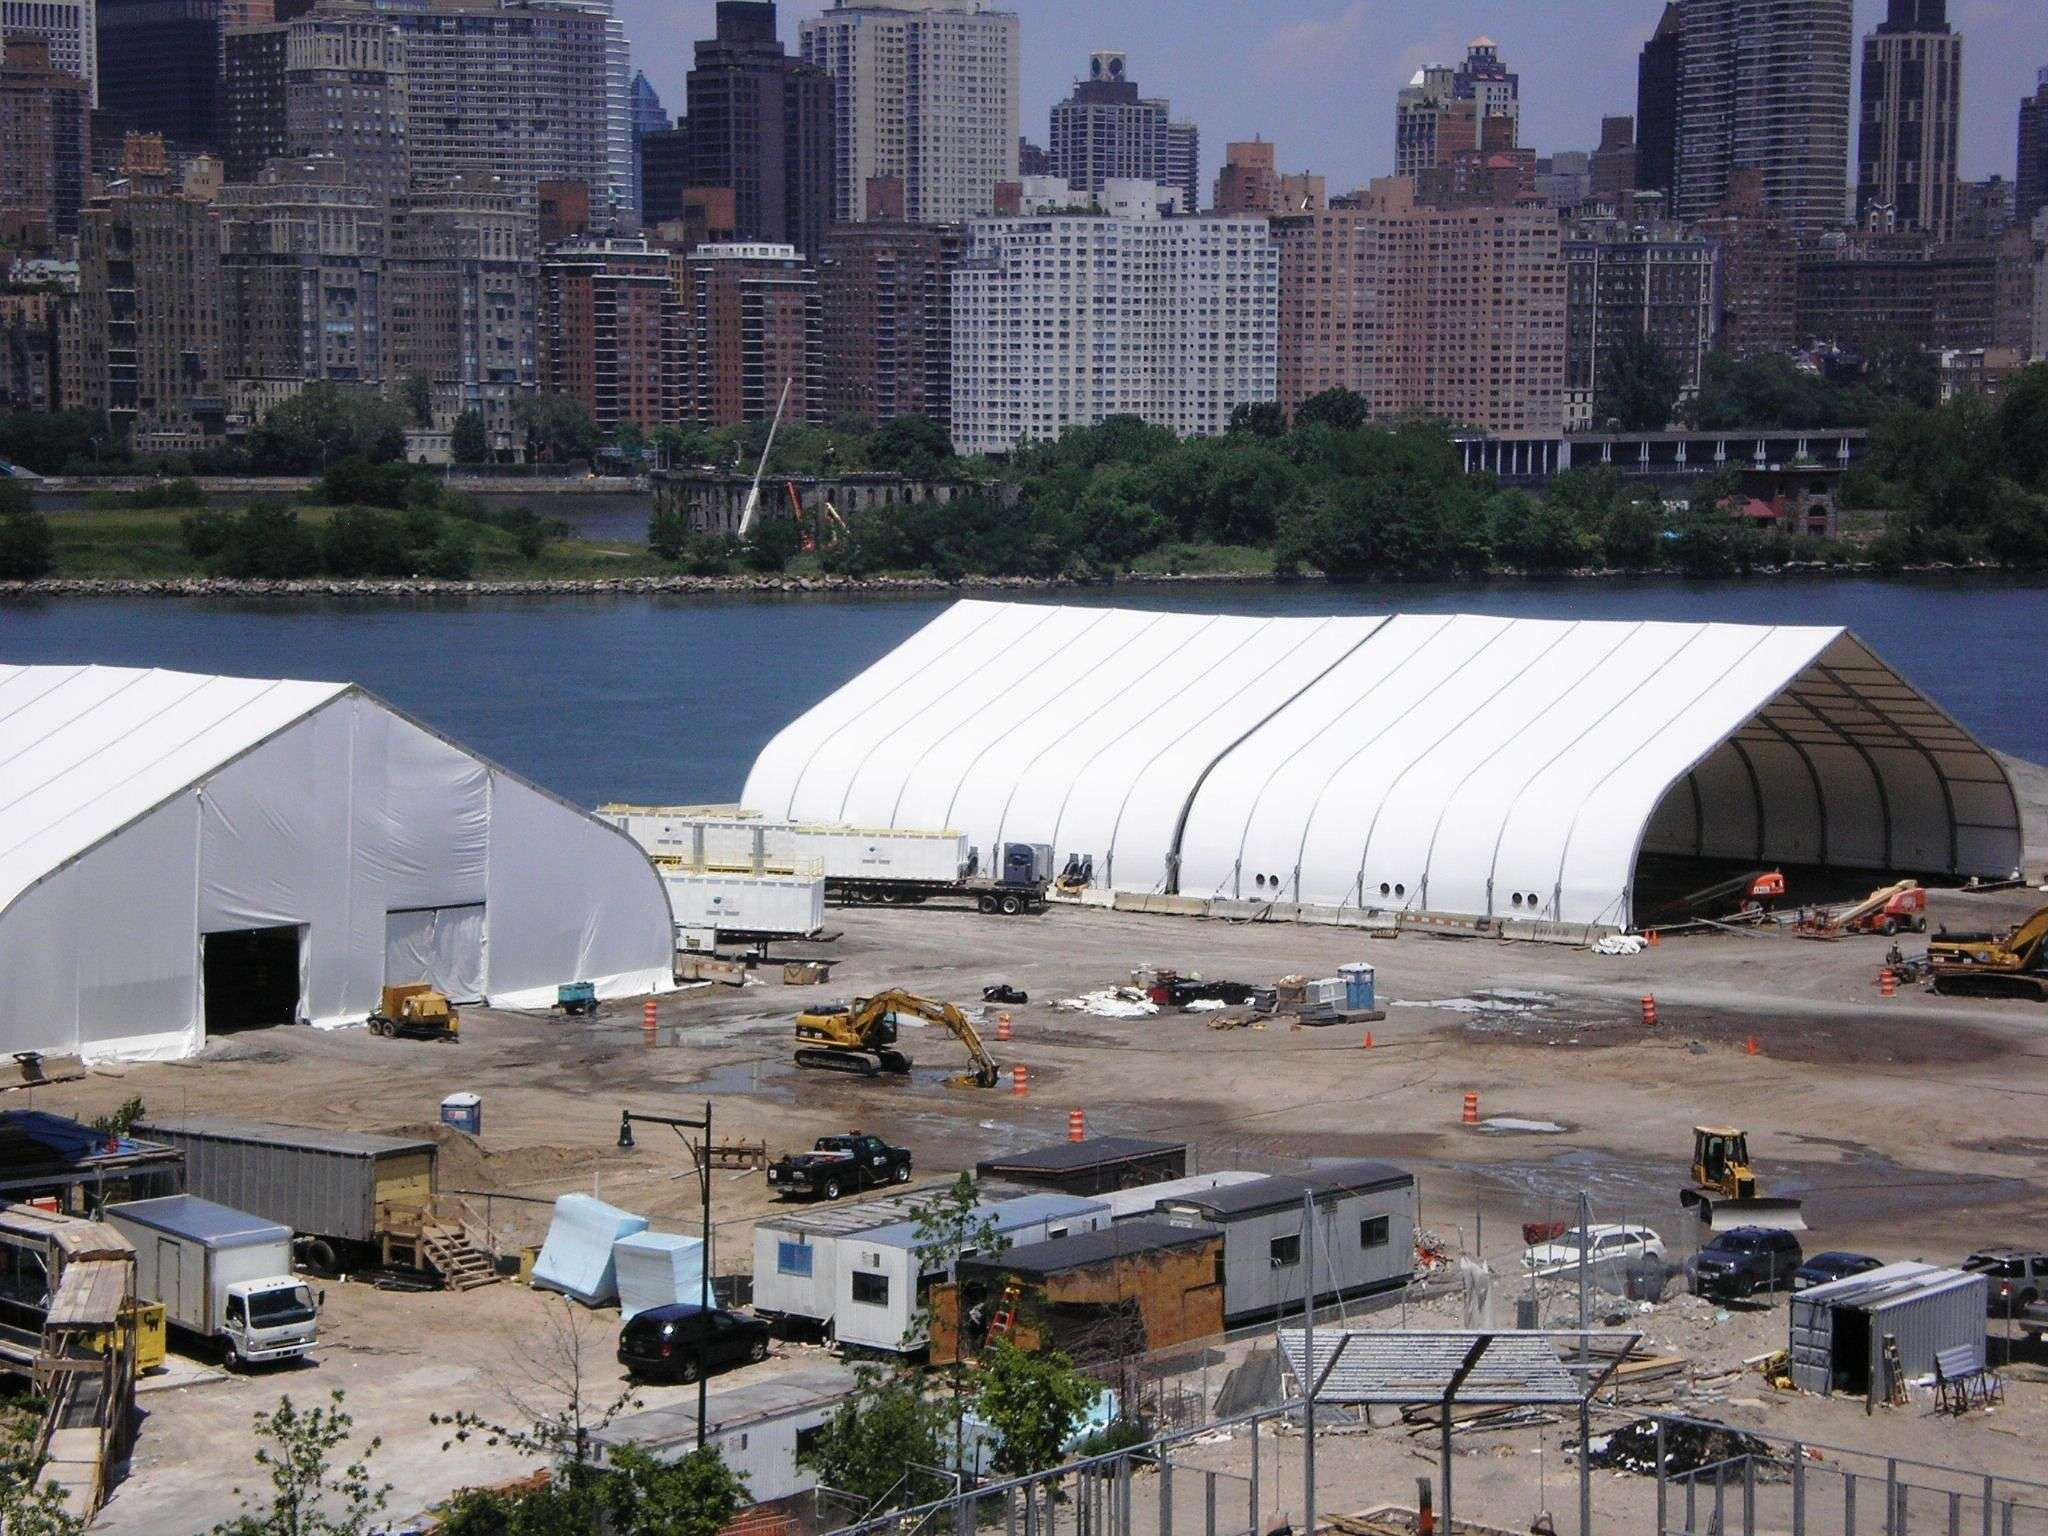 Environmental remediation site in New York Harbor using green remediation fabric structure as temporary project enclosure at water's edge